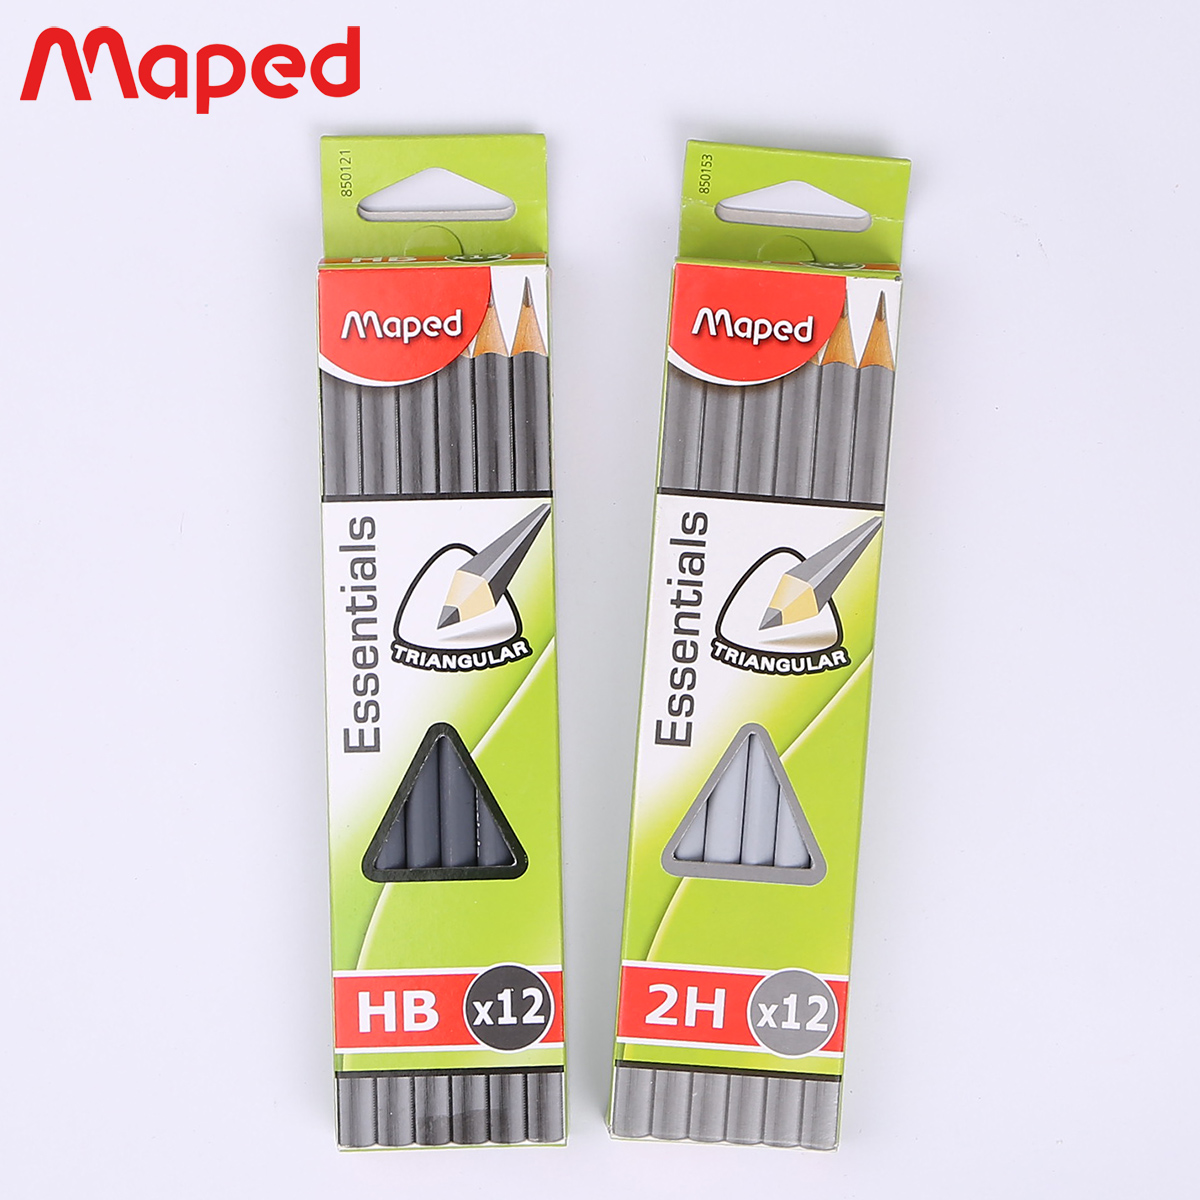 Maped maped student writing wooden pencil student test writing triangle pen pencil 2 h/hb/2b